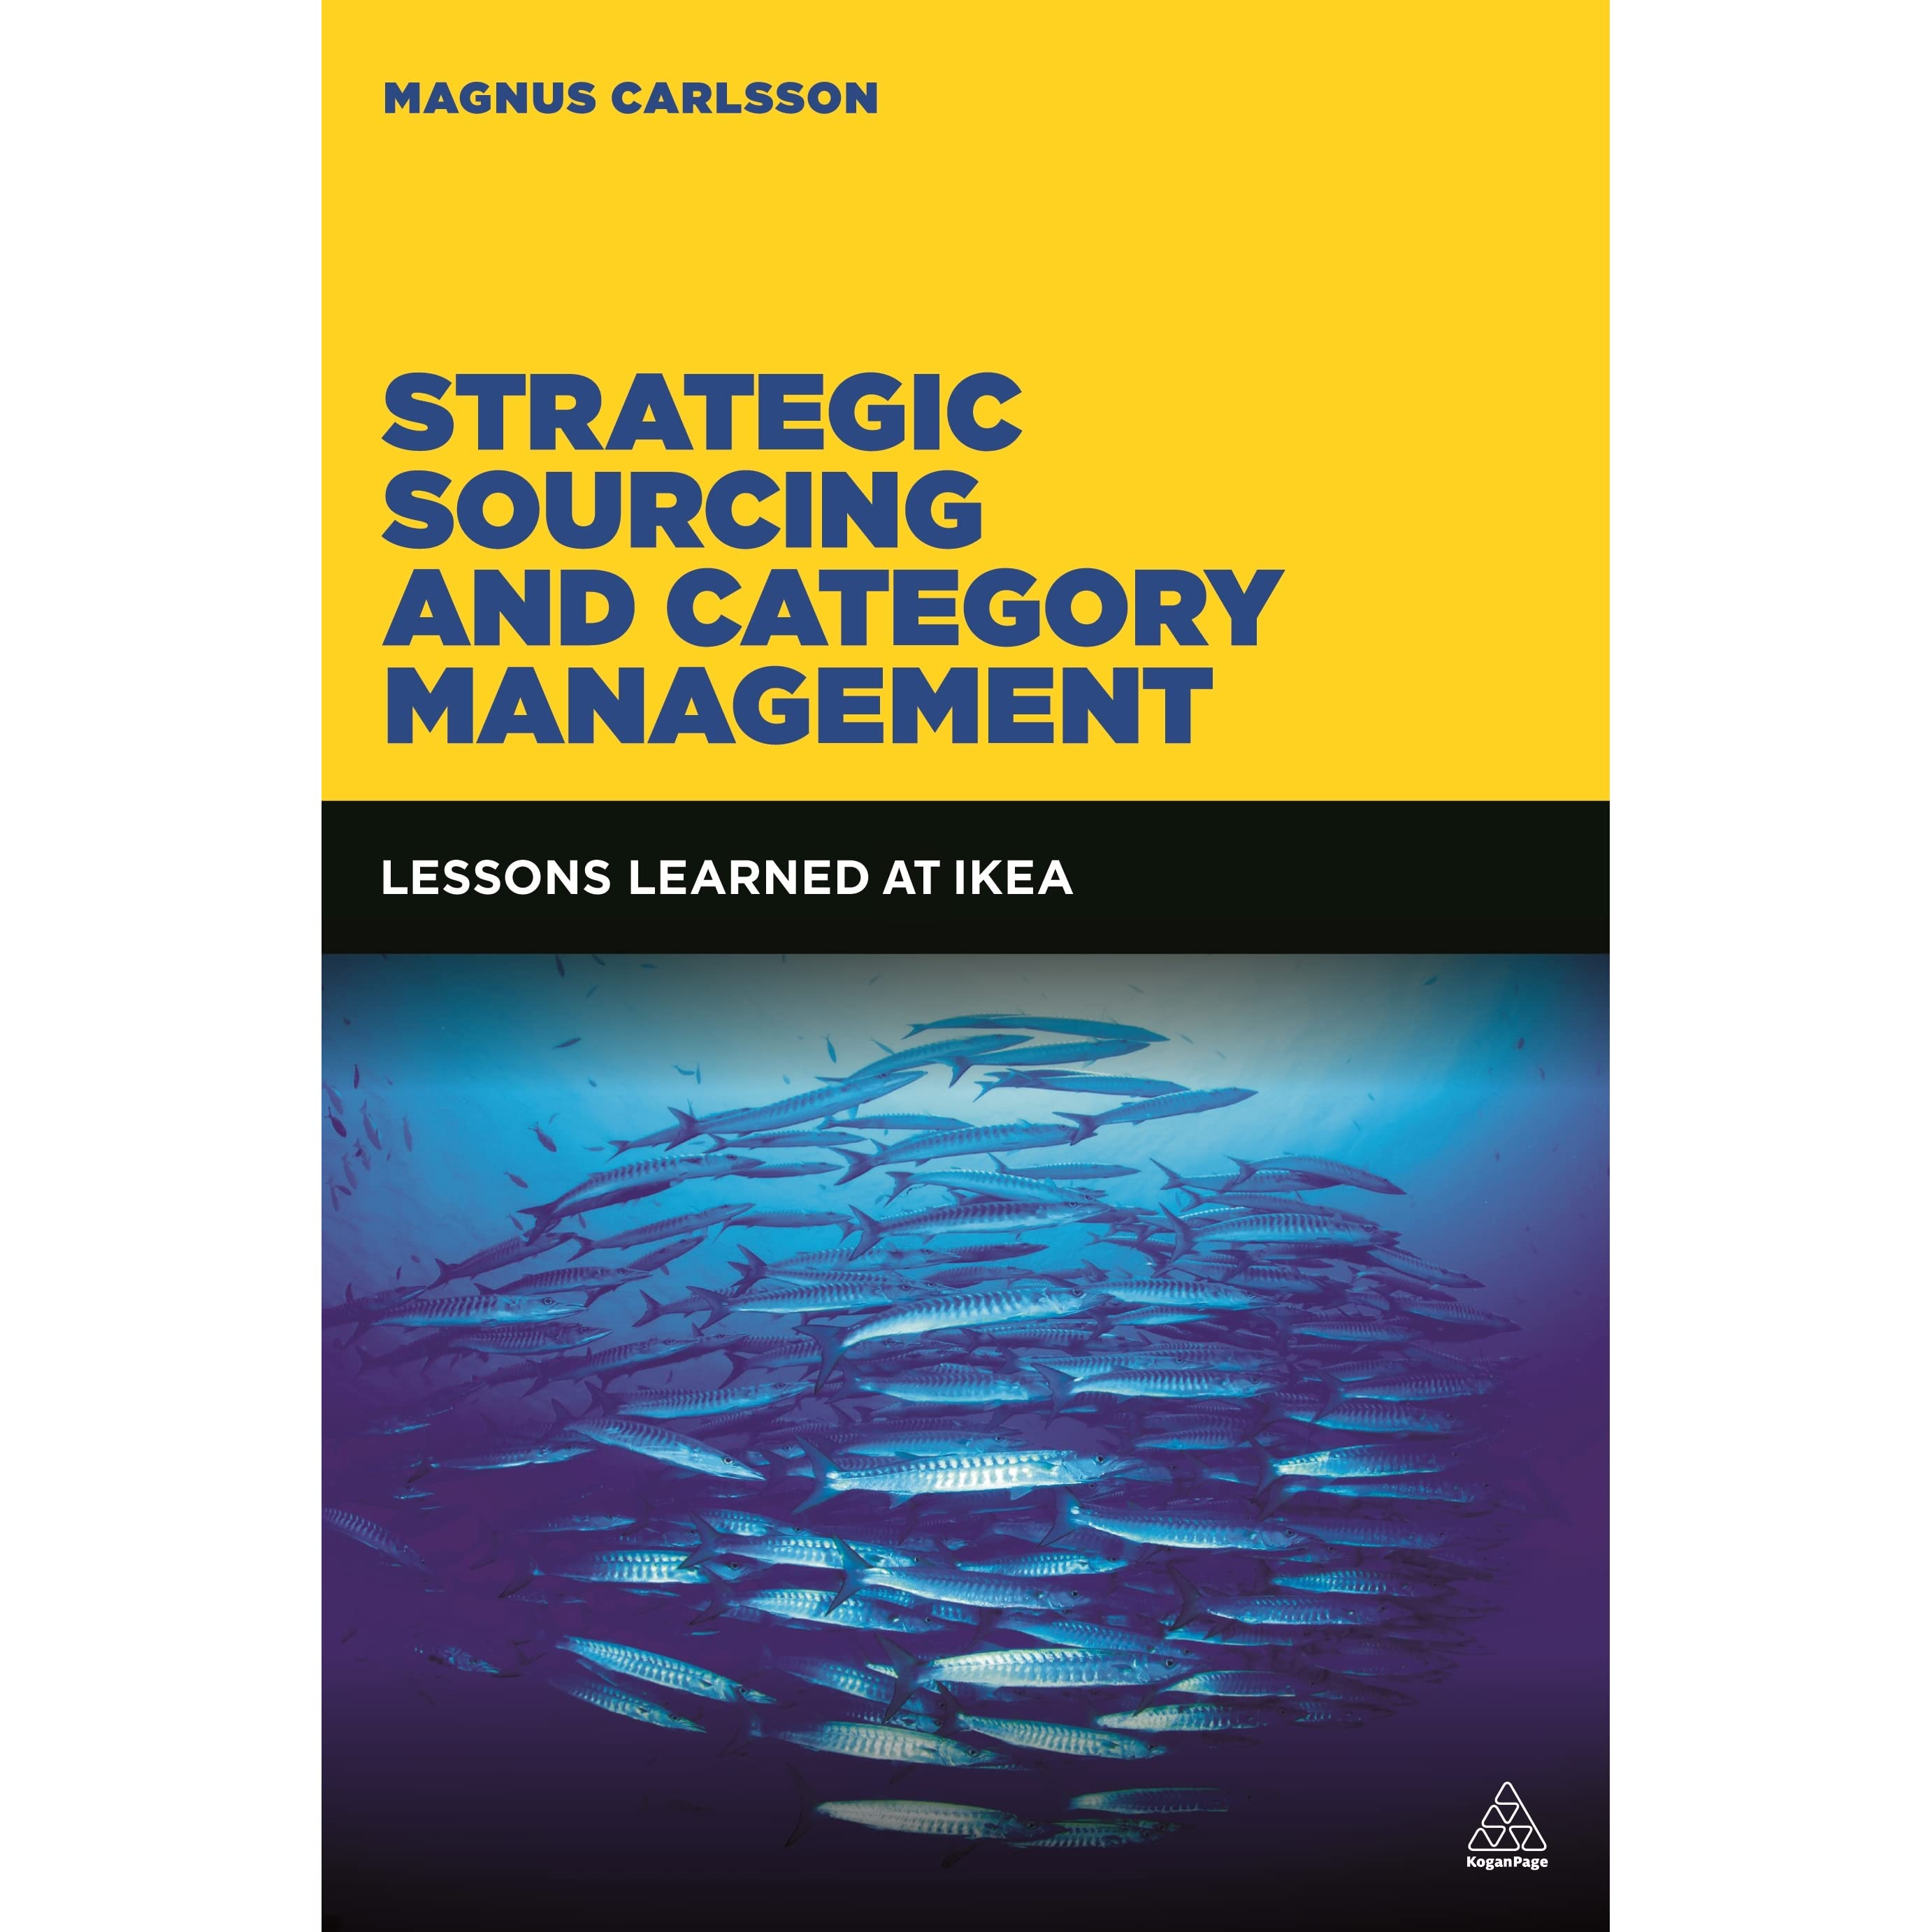 Strategic sourcing and category management lessons learned at strategic sourcing and category management lessons learned at ikea by magnus carlsson fandeluxe Images